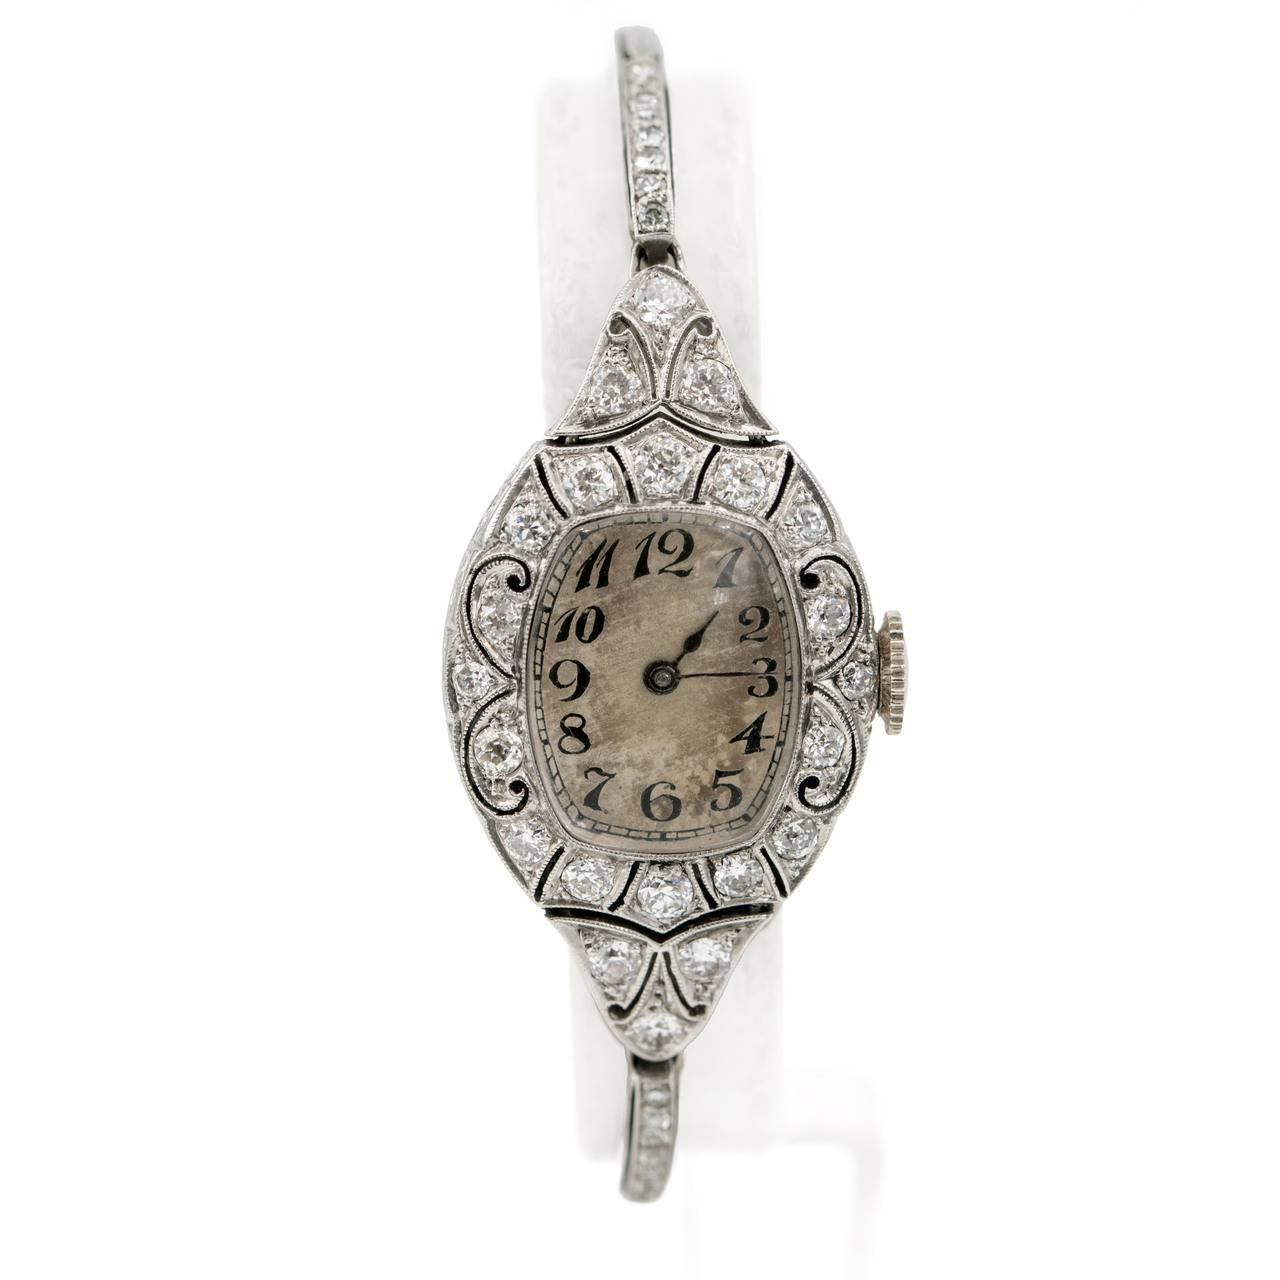 Edwardian Platinum & Diamond Watch made by H.E Rossel